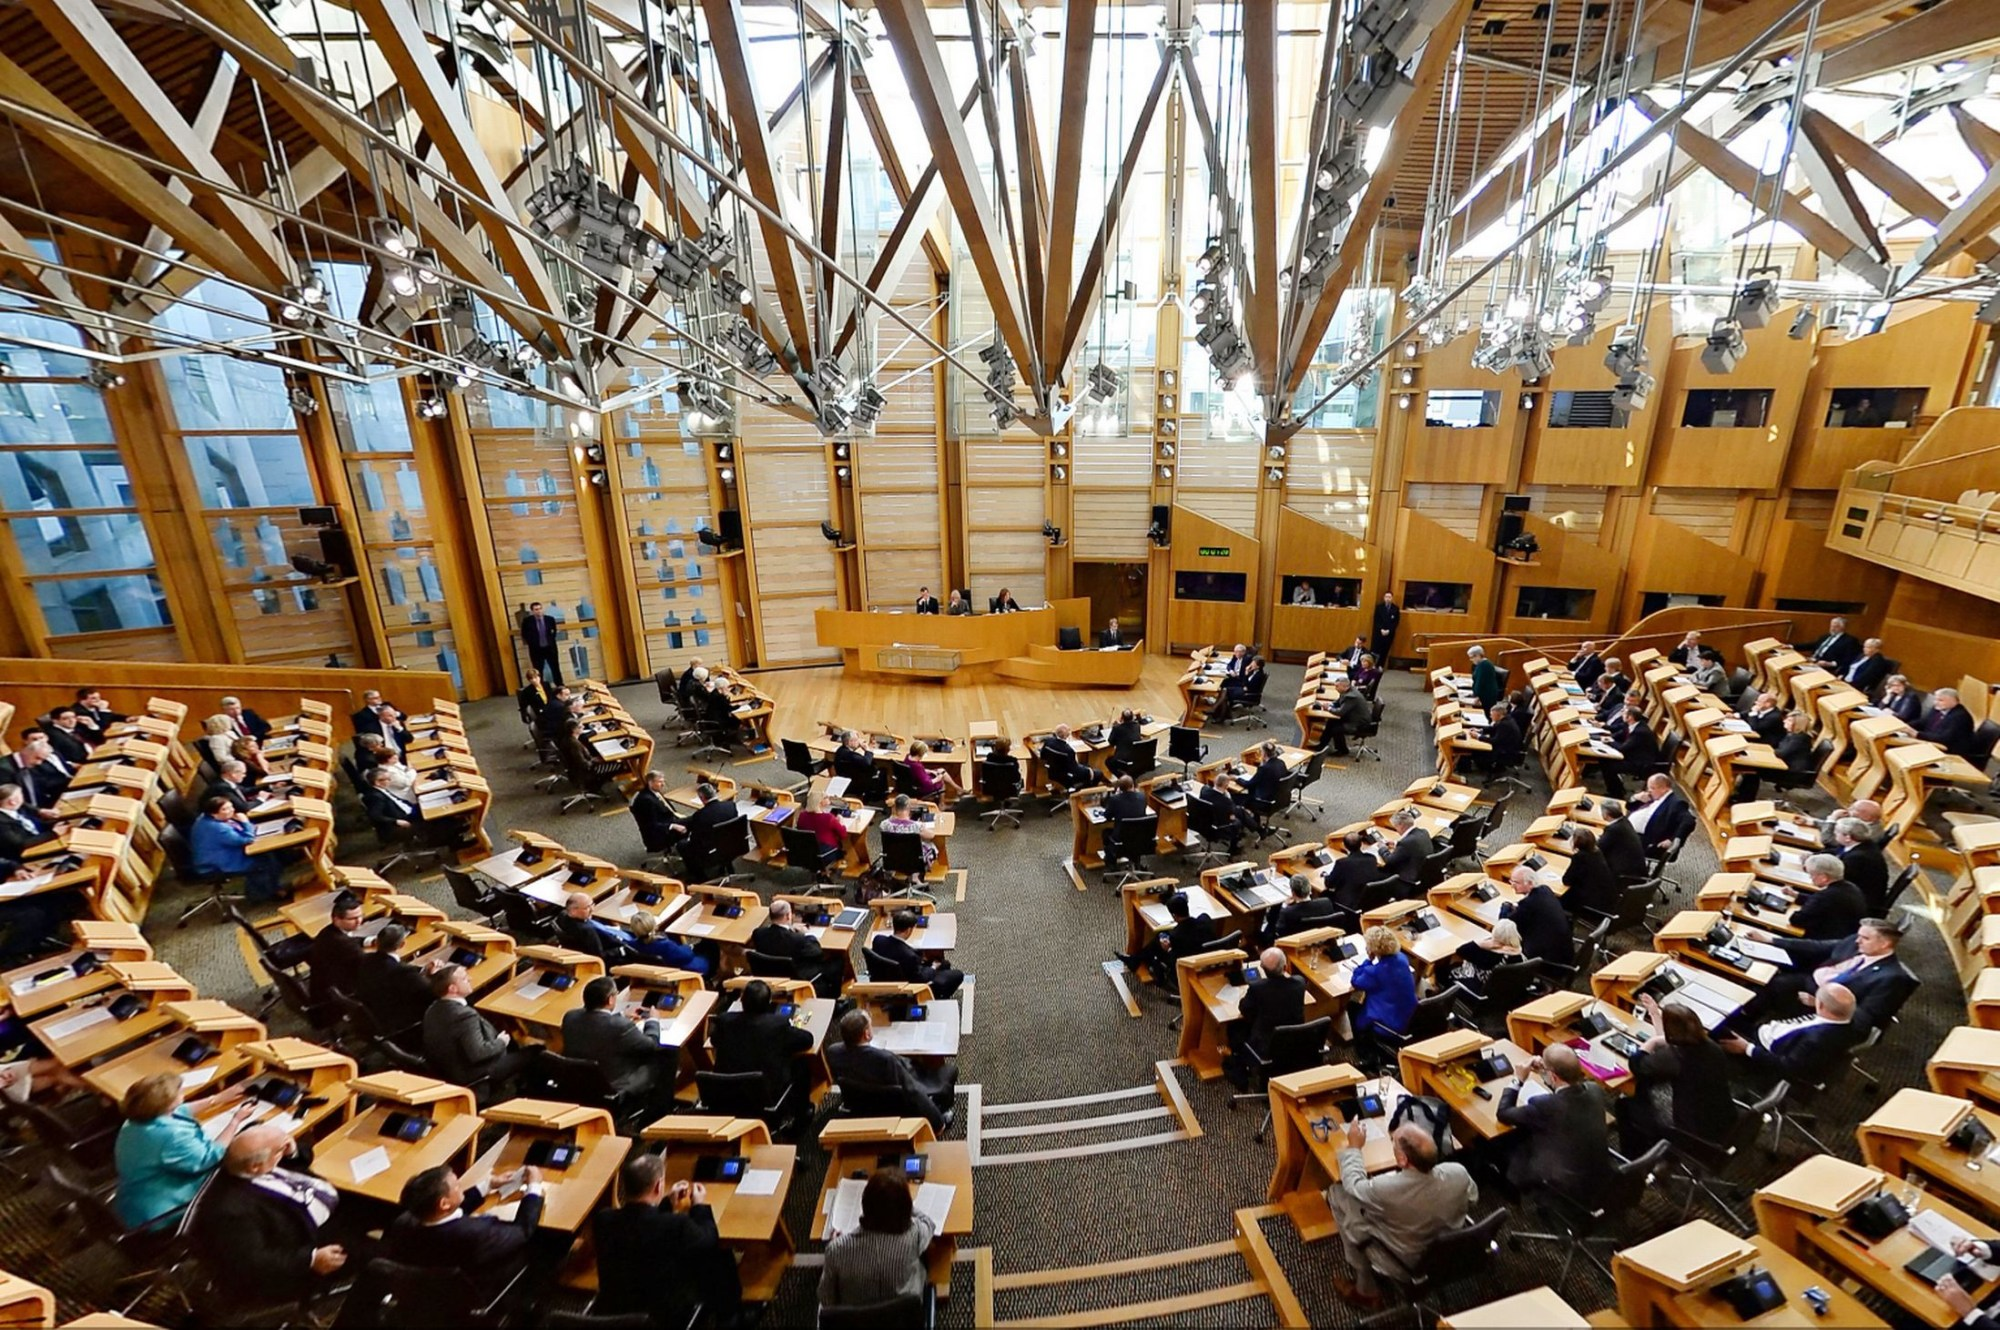 Scottish Government Hate Crime Bill Team: The meeting